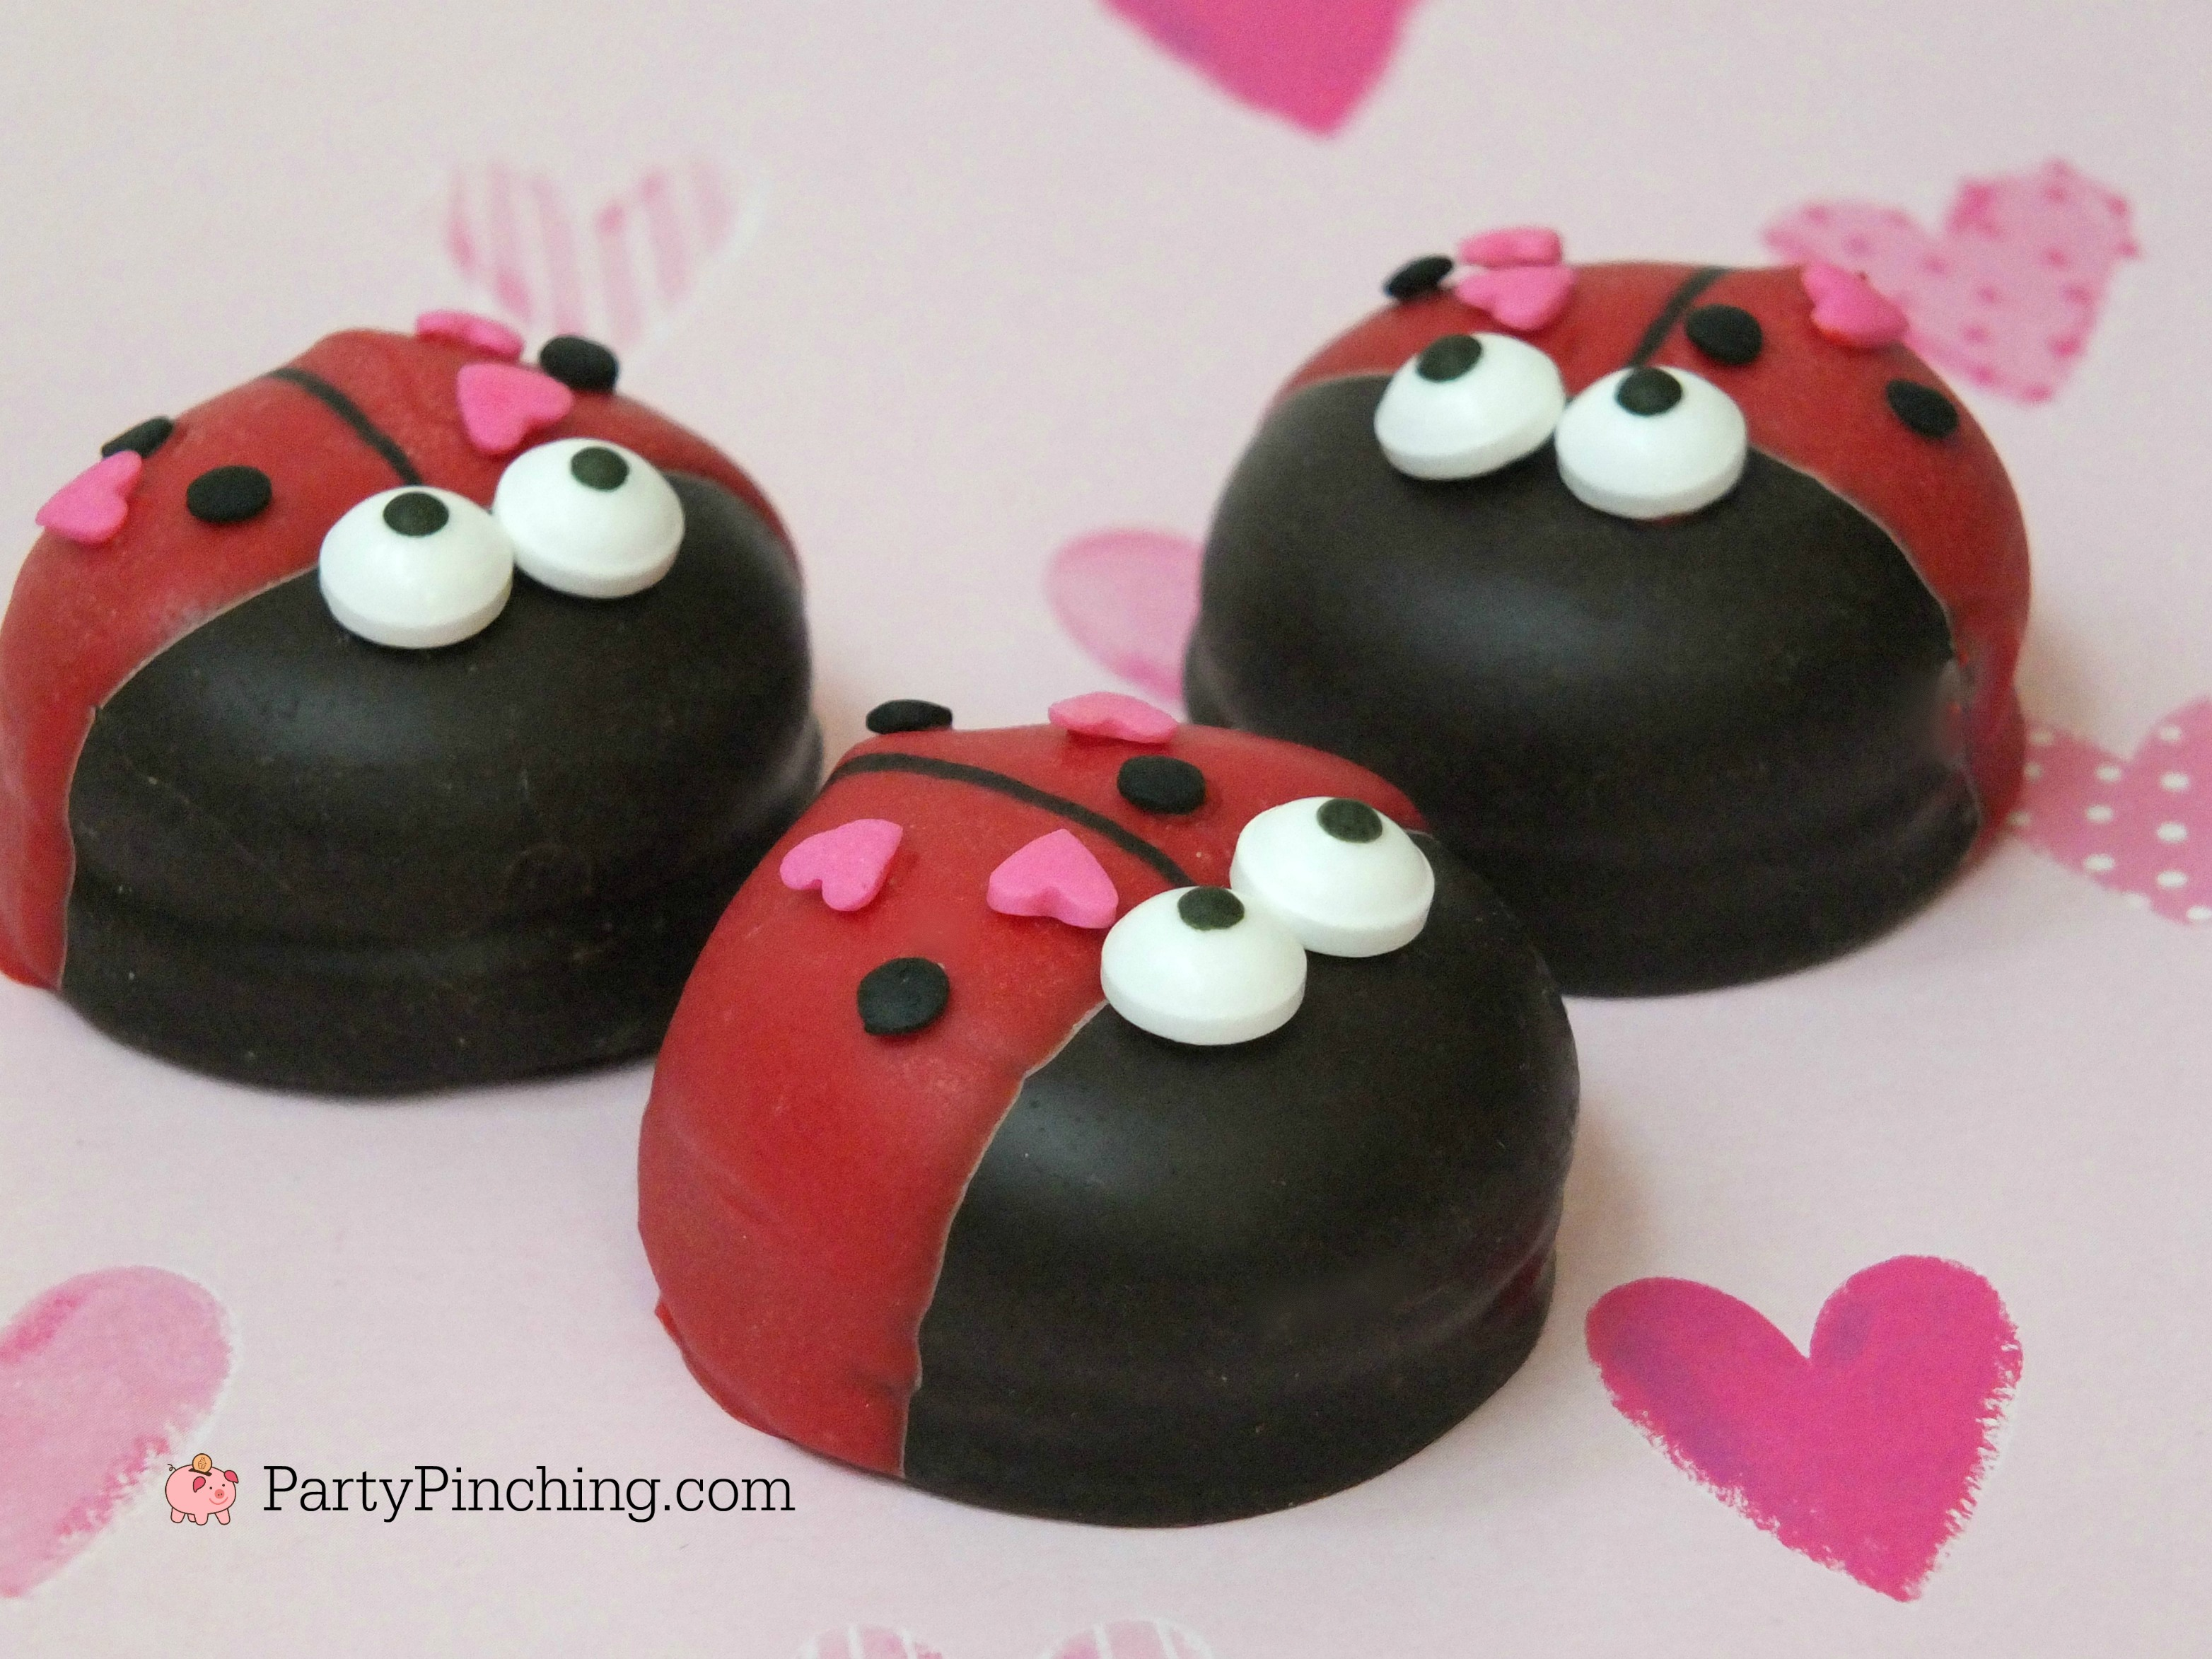 Valentine's Day love bug Mallomar cookies, cute cookies for Valentine's day, adorable treat ideas for kids Valentine's party